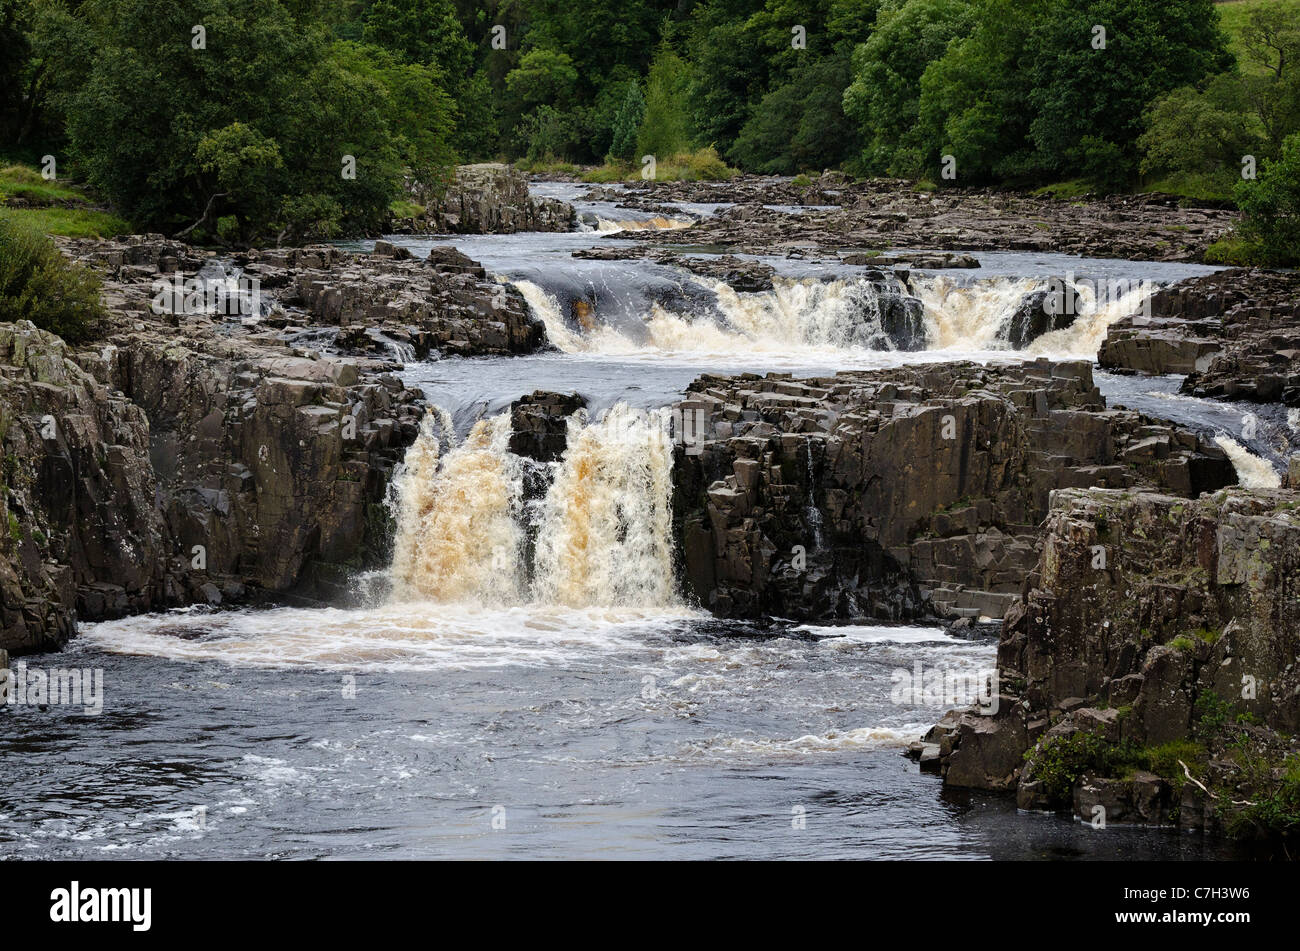 Low Force waterfall - Stock Image